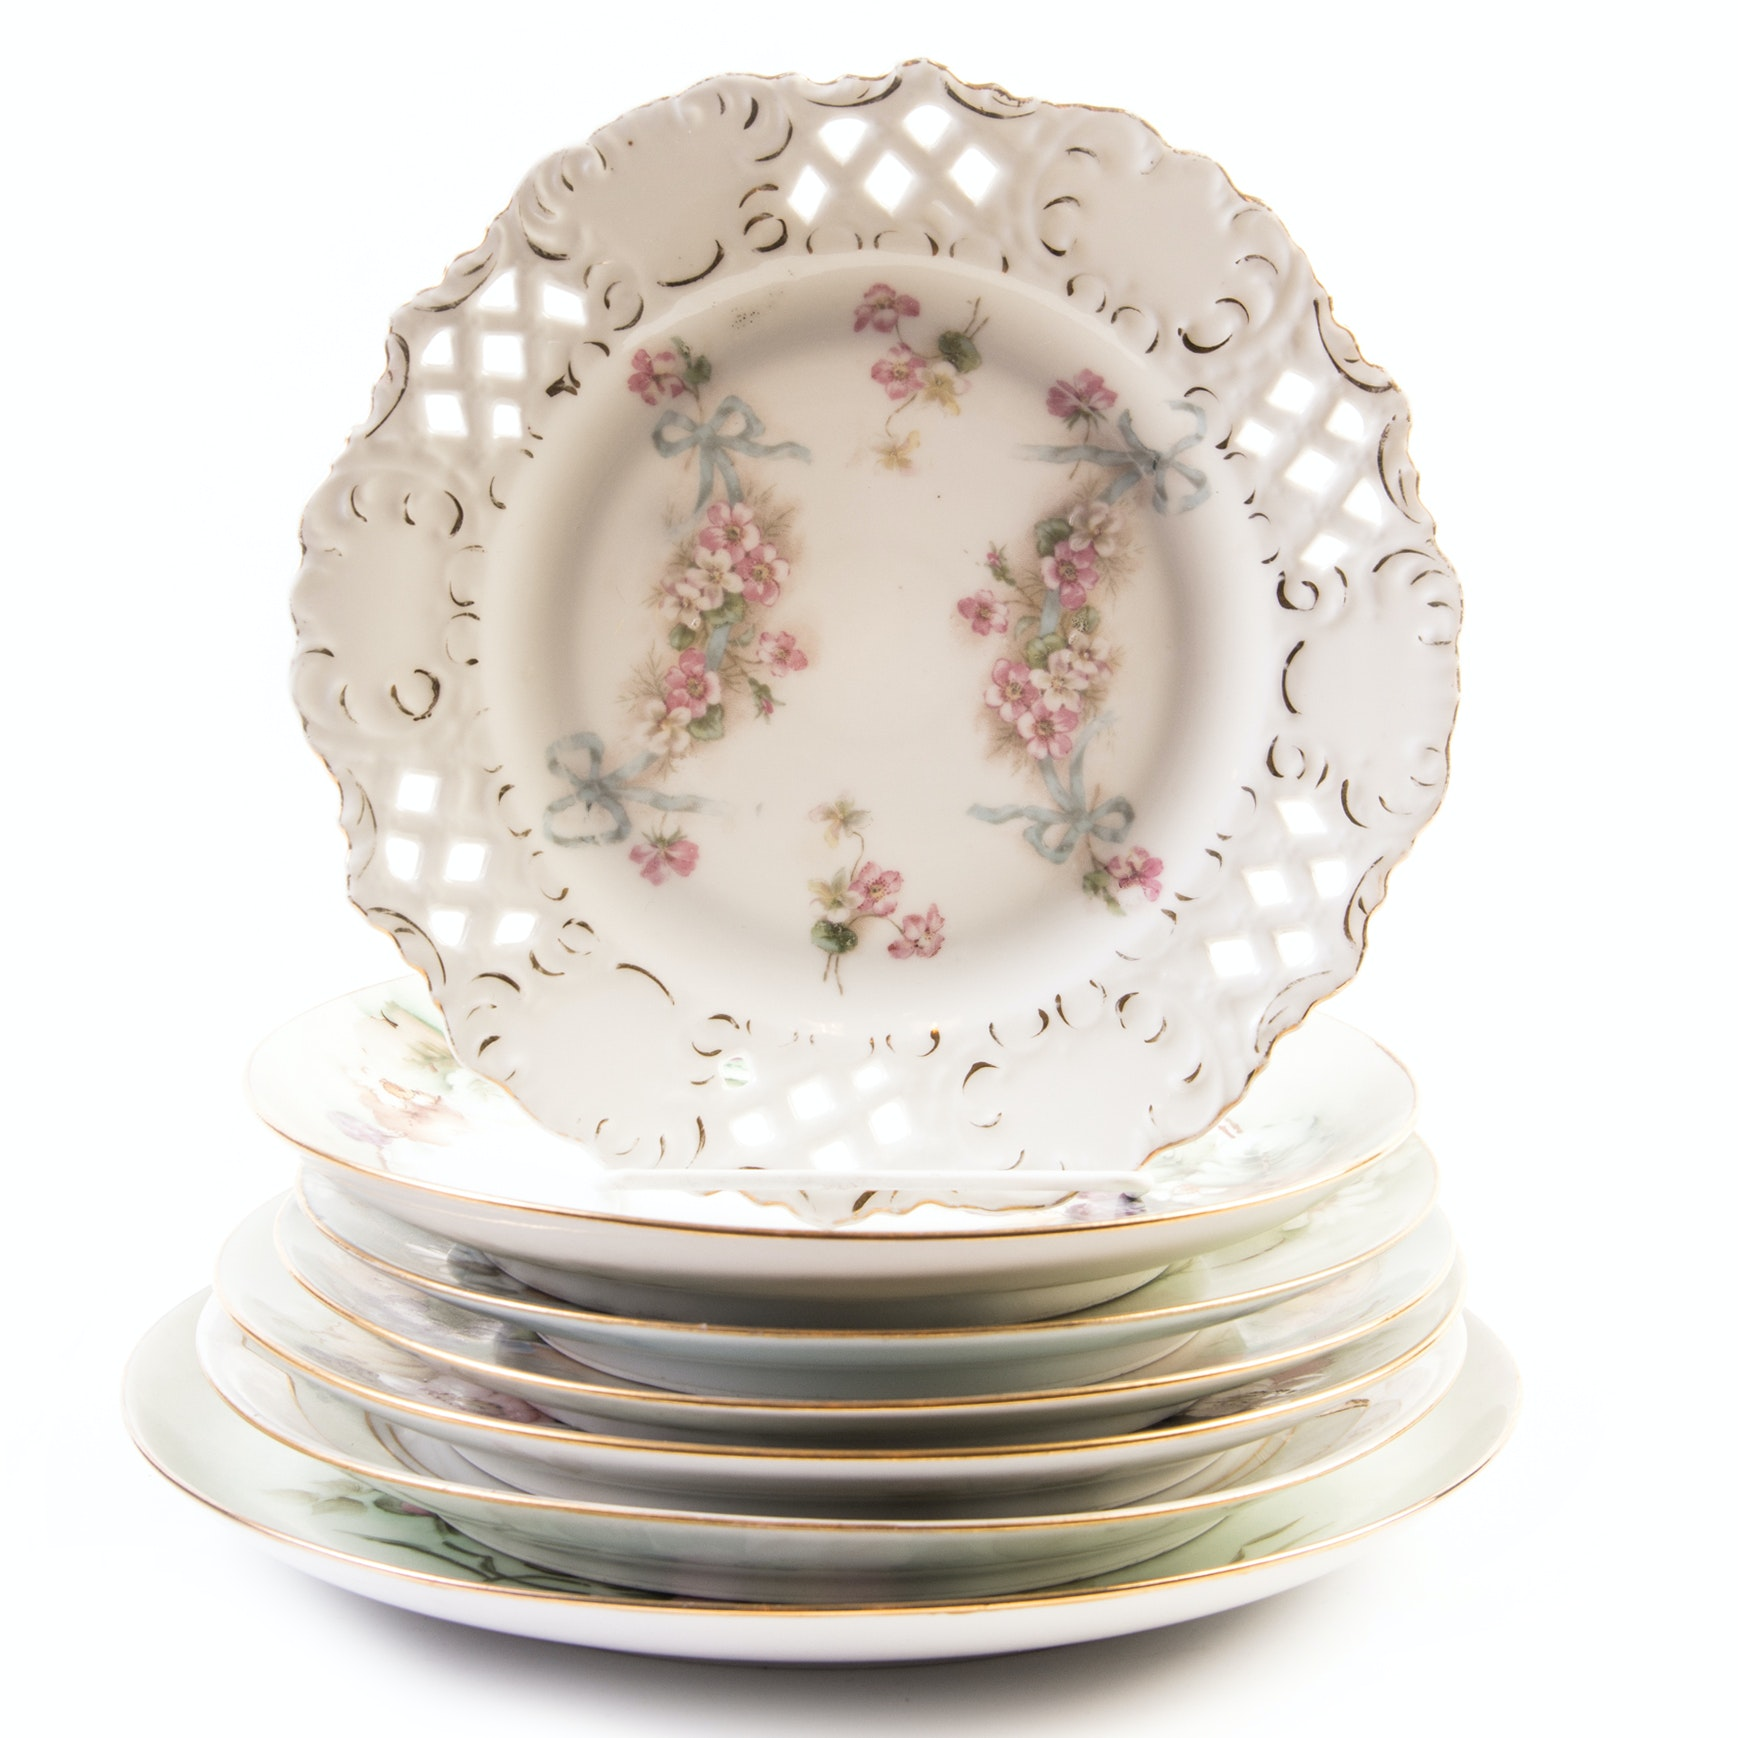 Decorative Hand Painted Porcelain Plates